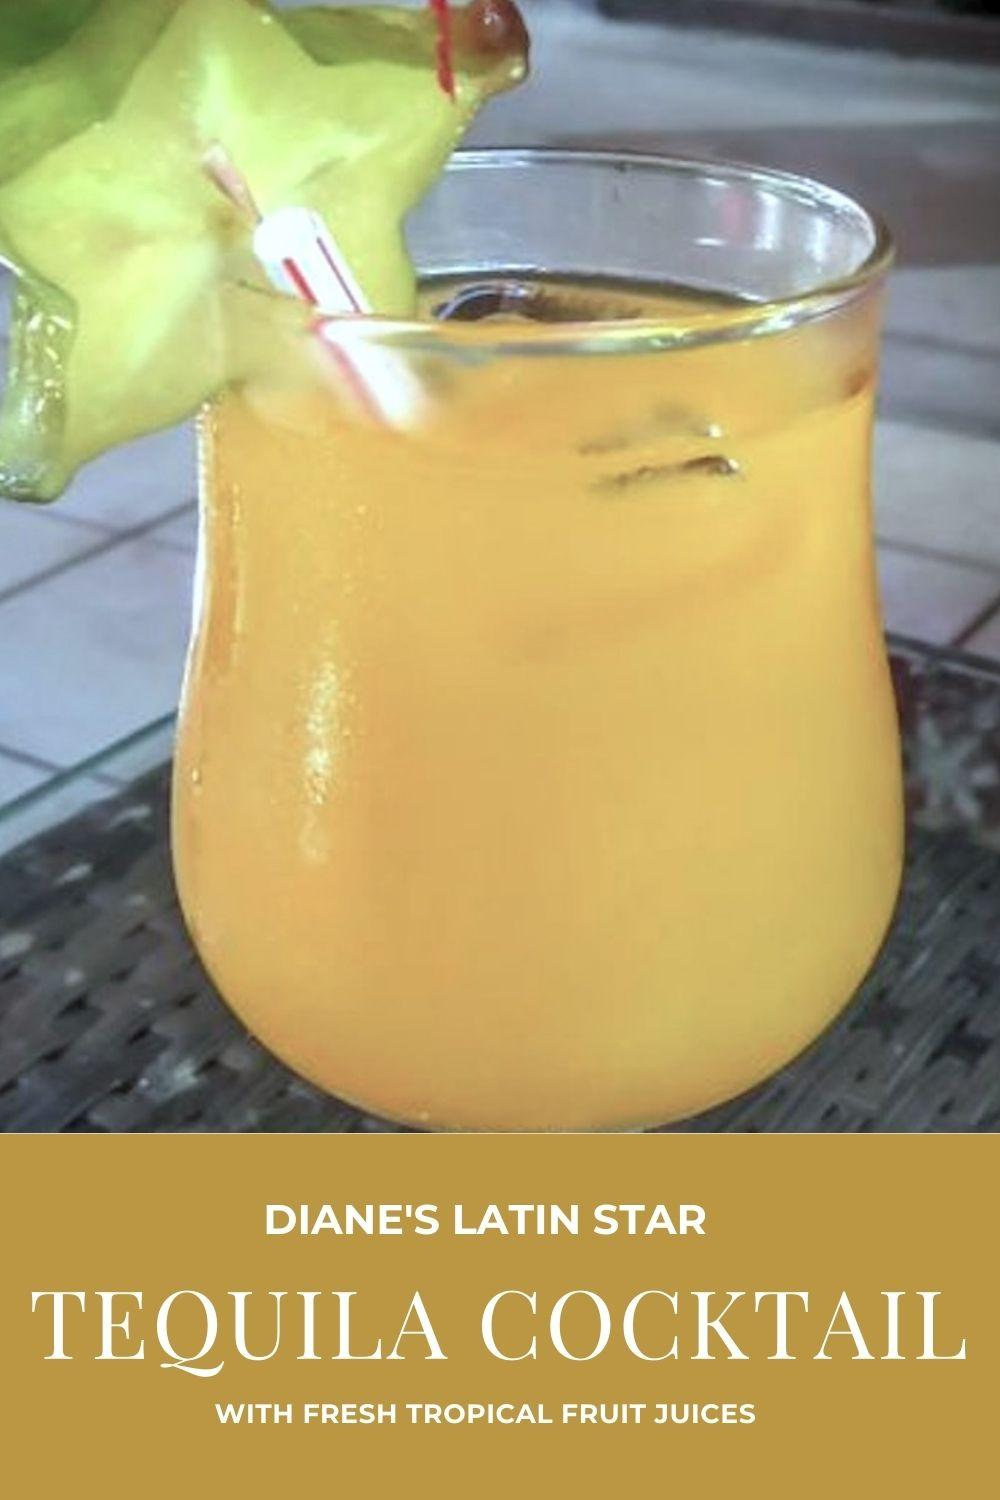 Diane's Latin Star Tequila Cocktail Graphic